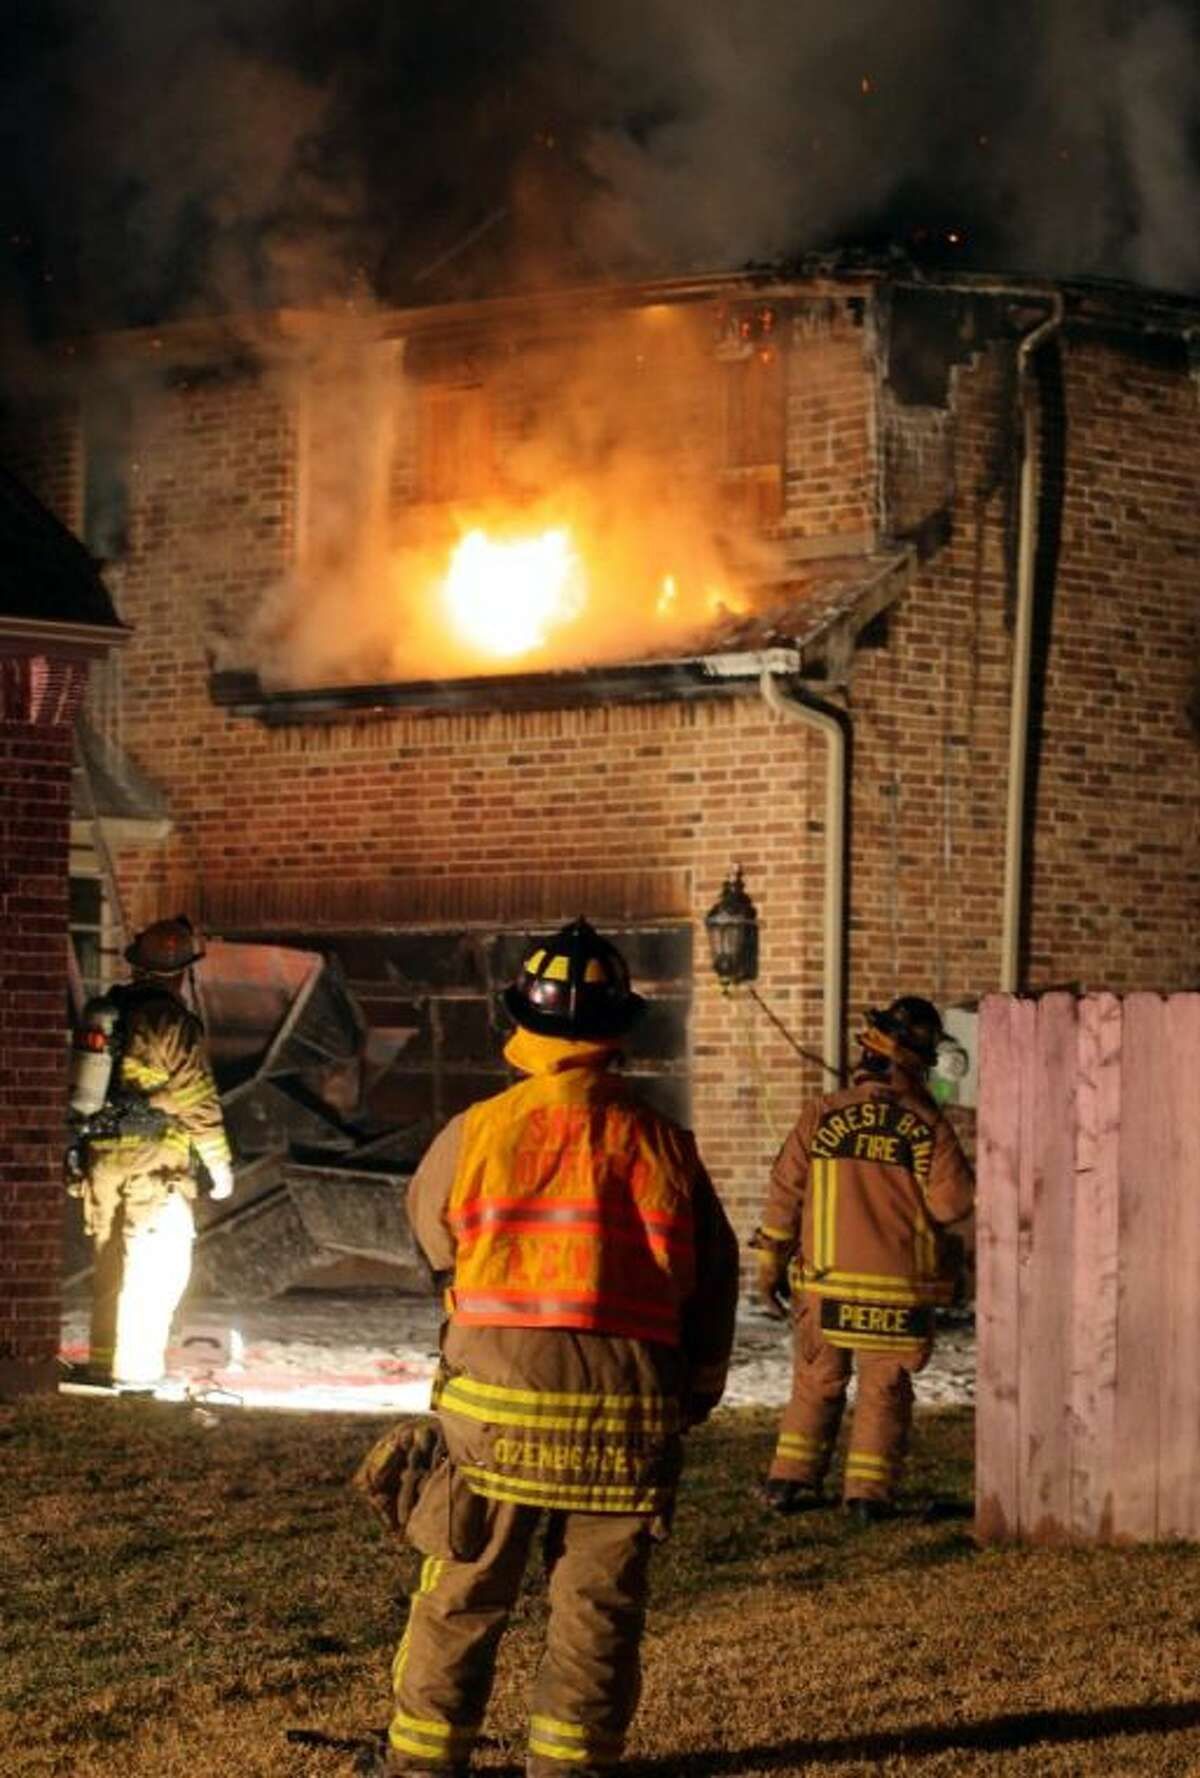 Firefighters outside the house monitor the fire as inside crews locate and extinguish the fire.